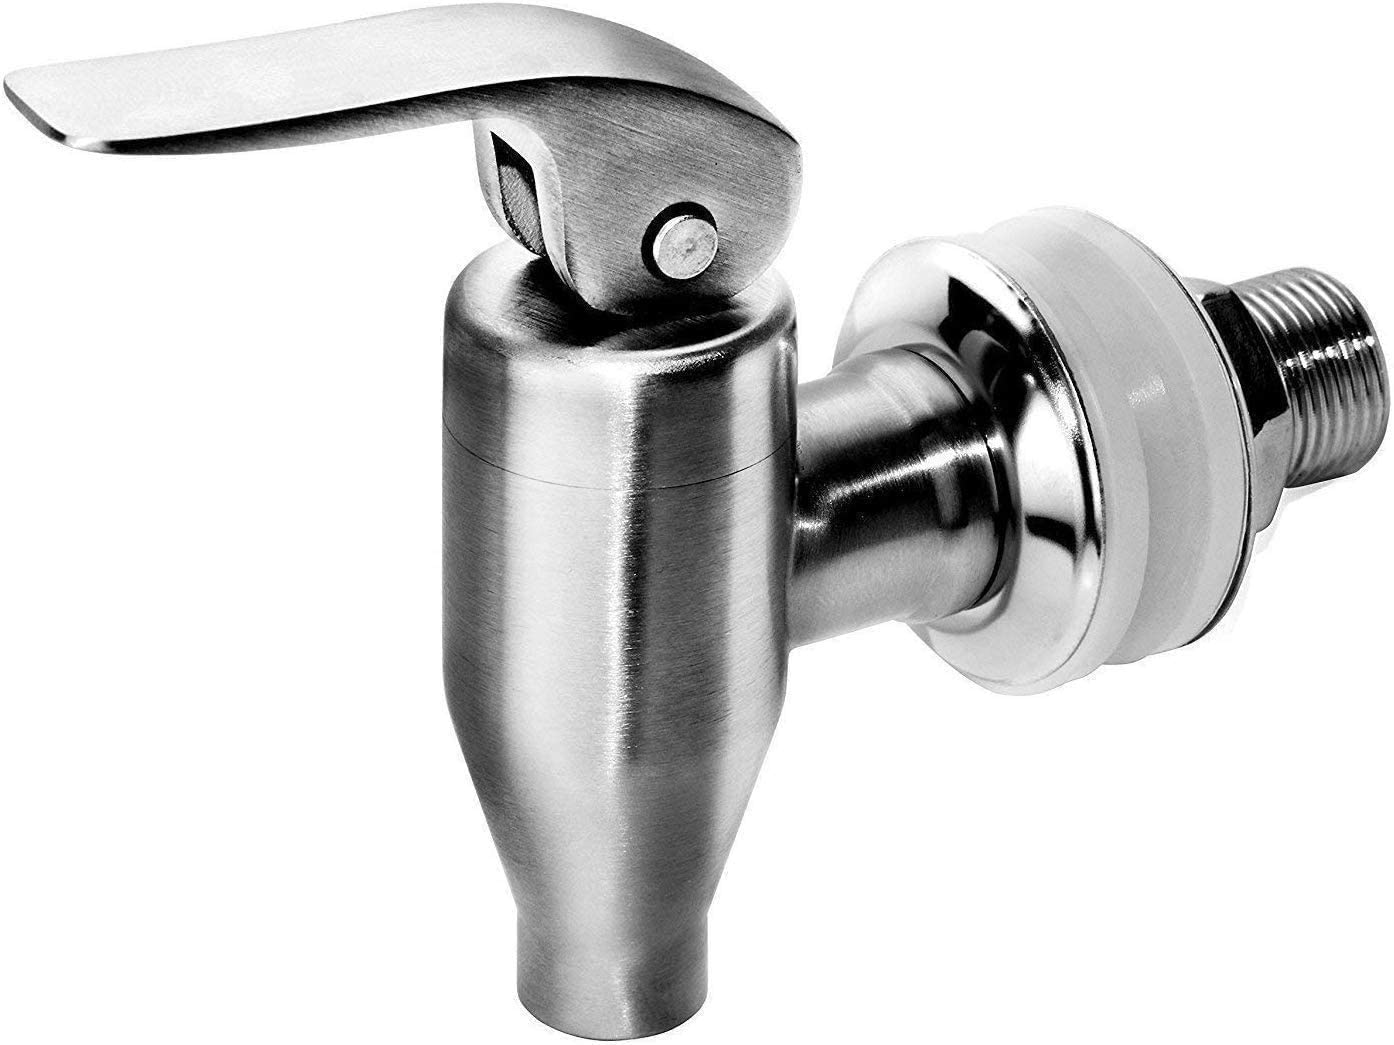 DOZYANT Beverage Dispenser Push Style Spigot,Stainless Steel Polished Finished, Water Dispenser Replacement Faucet, fits Berkey and Gravity Filter systems